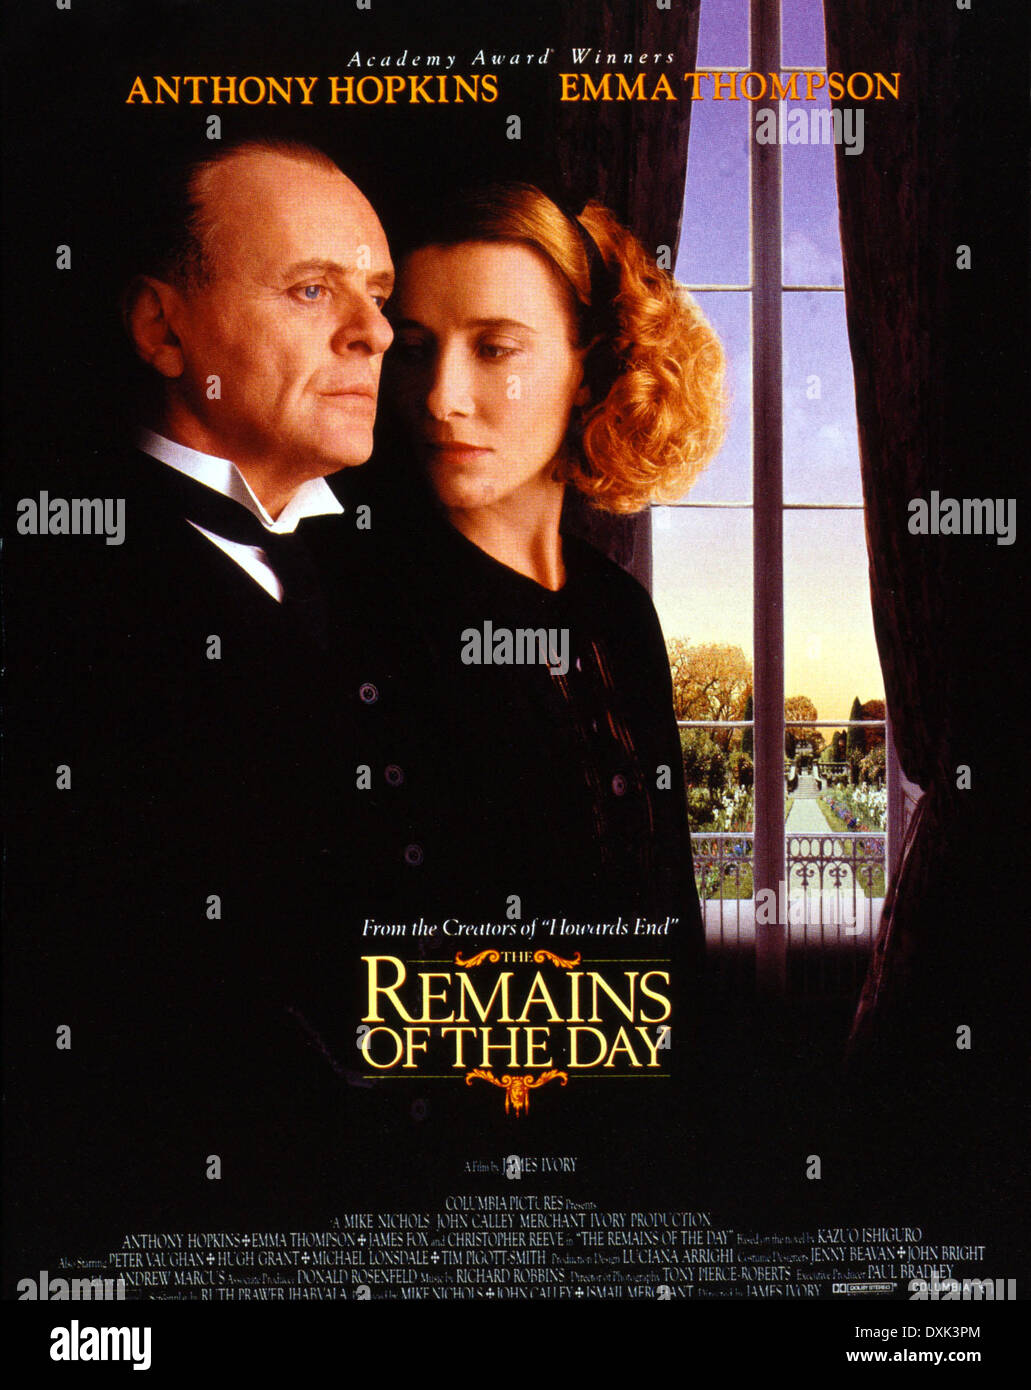 THE REMAINS OF THE DAY (UK/US 1993) COLUMBIA PICTURES - Stock Image